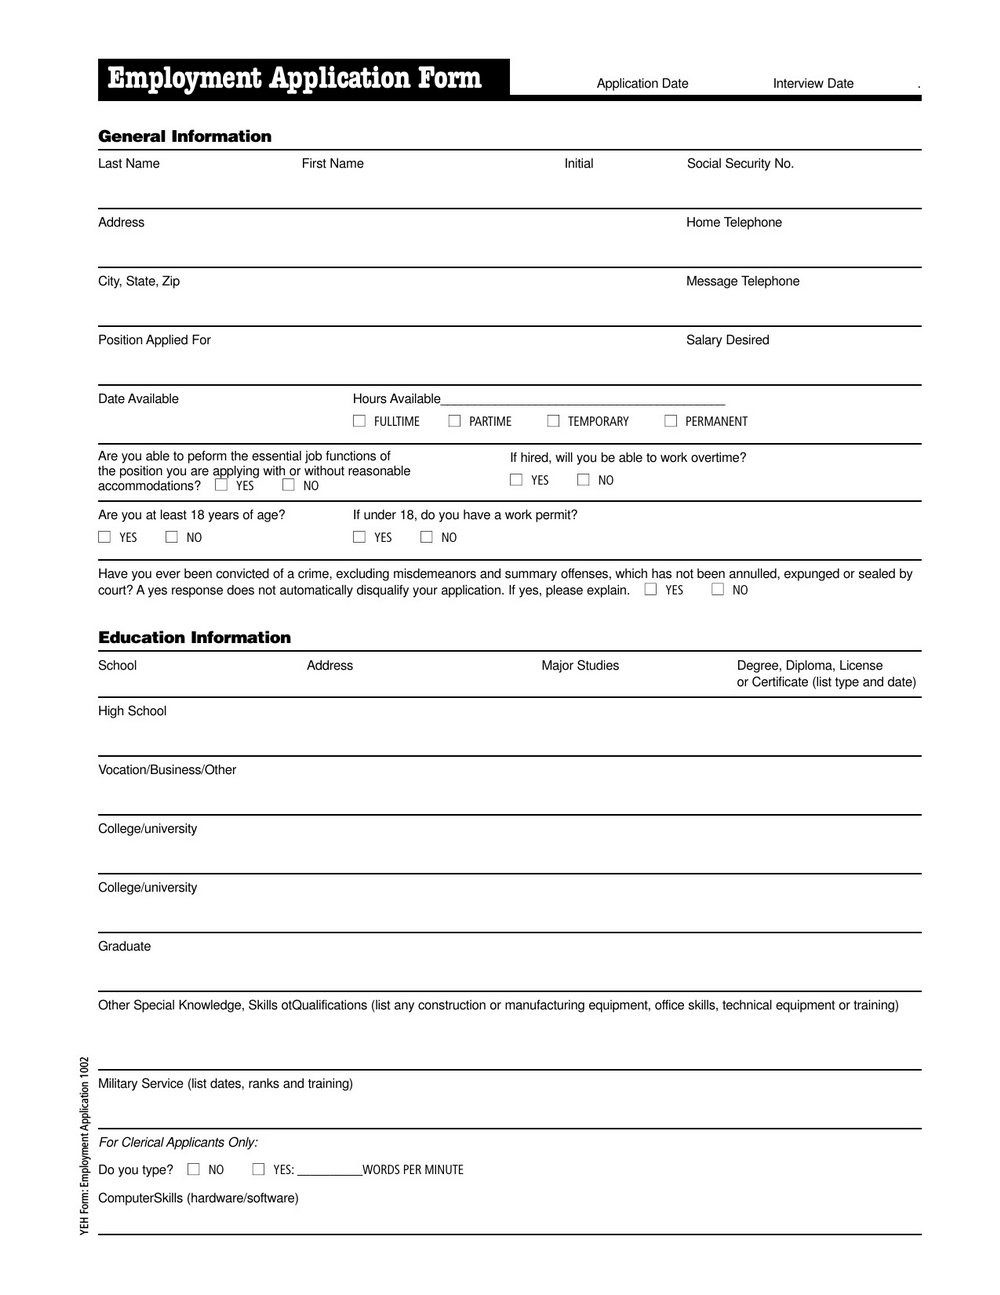 Tim Hortons Job Application Form Online Canada